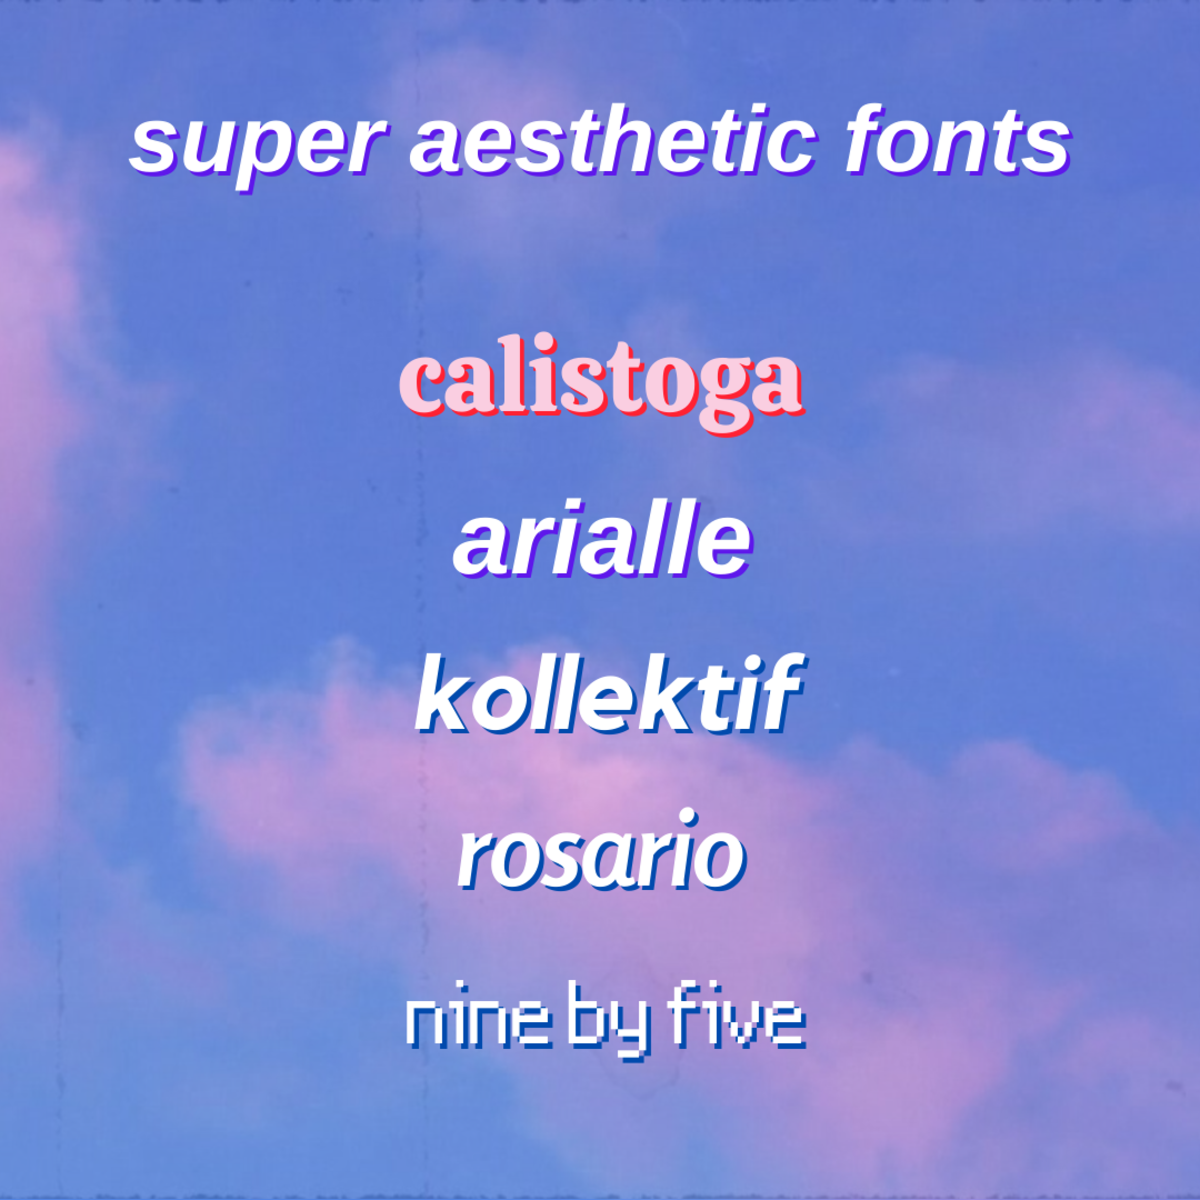 Some examples of aesthetic fonts for you to try out in your videos!